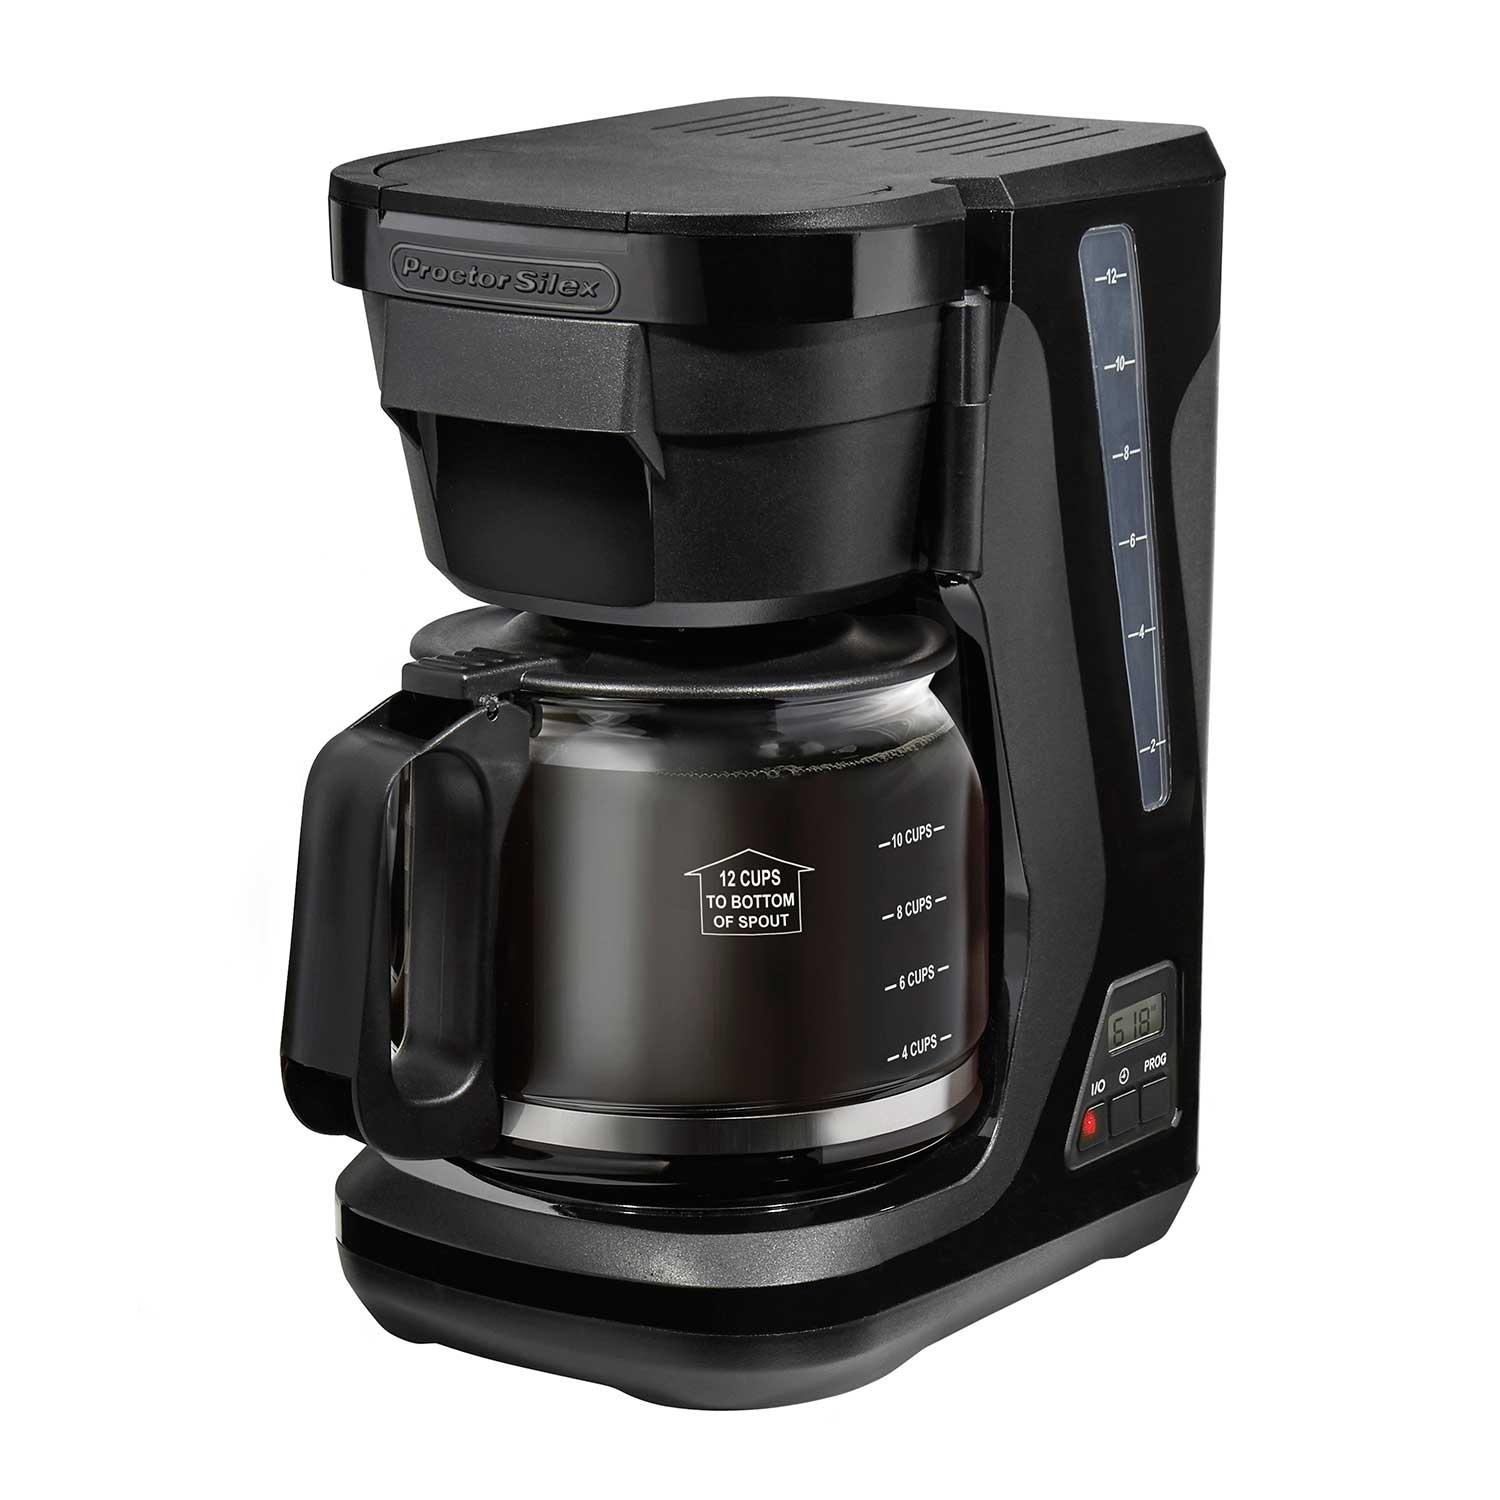 Compact Programmable Coffee Maker (black) (43685) Small Size